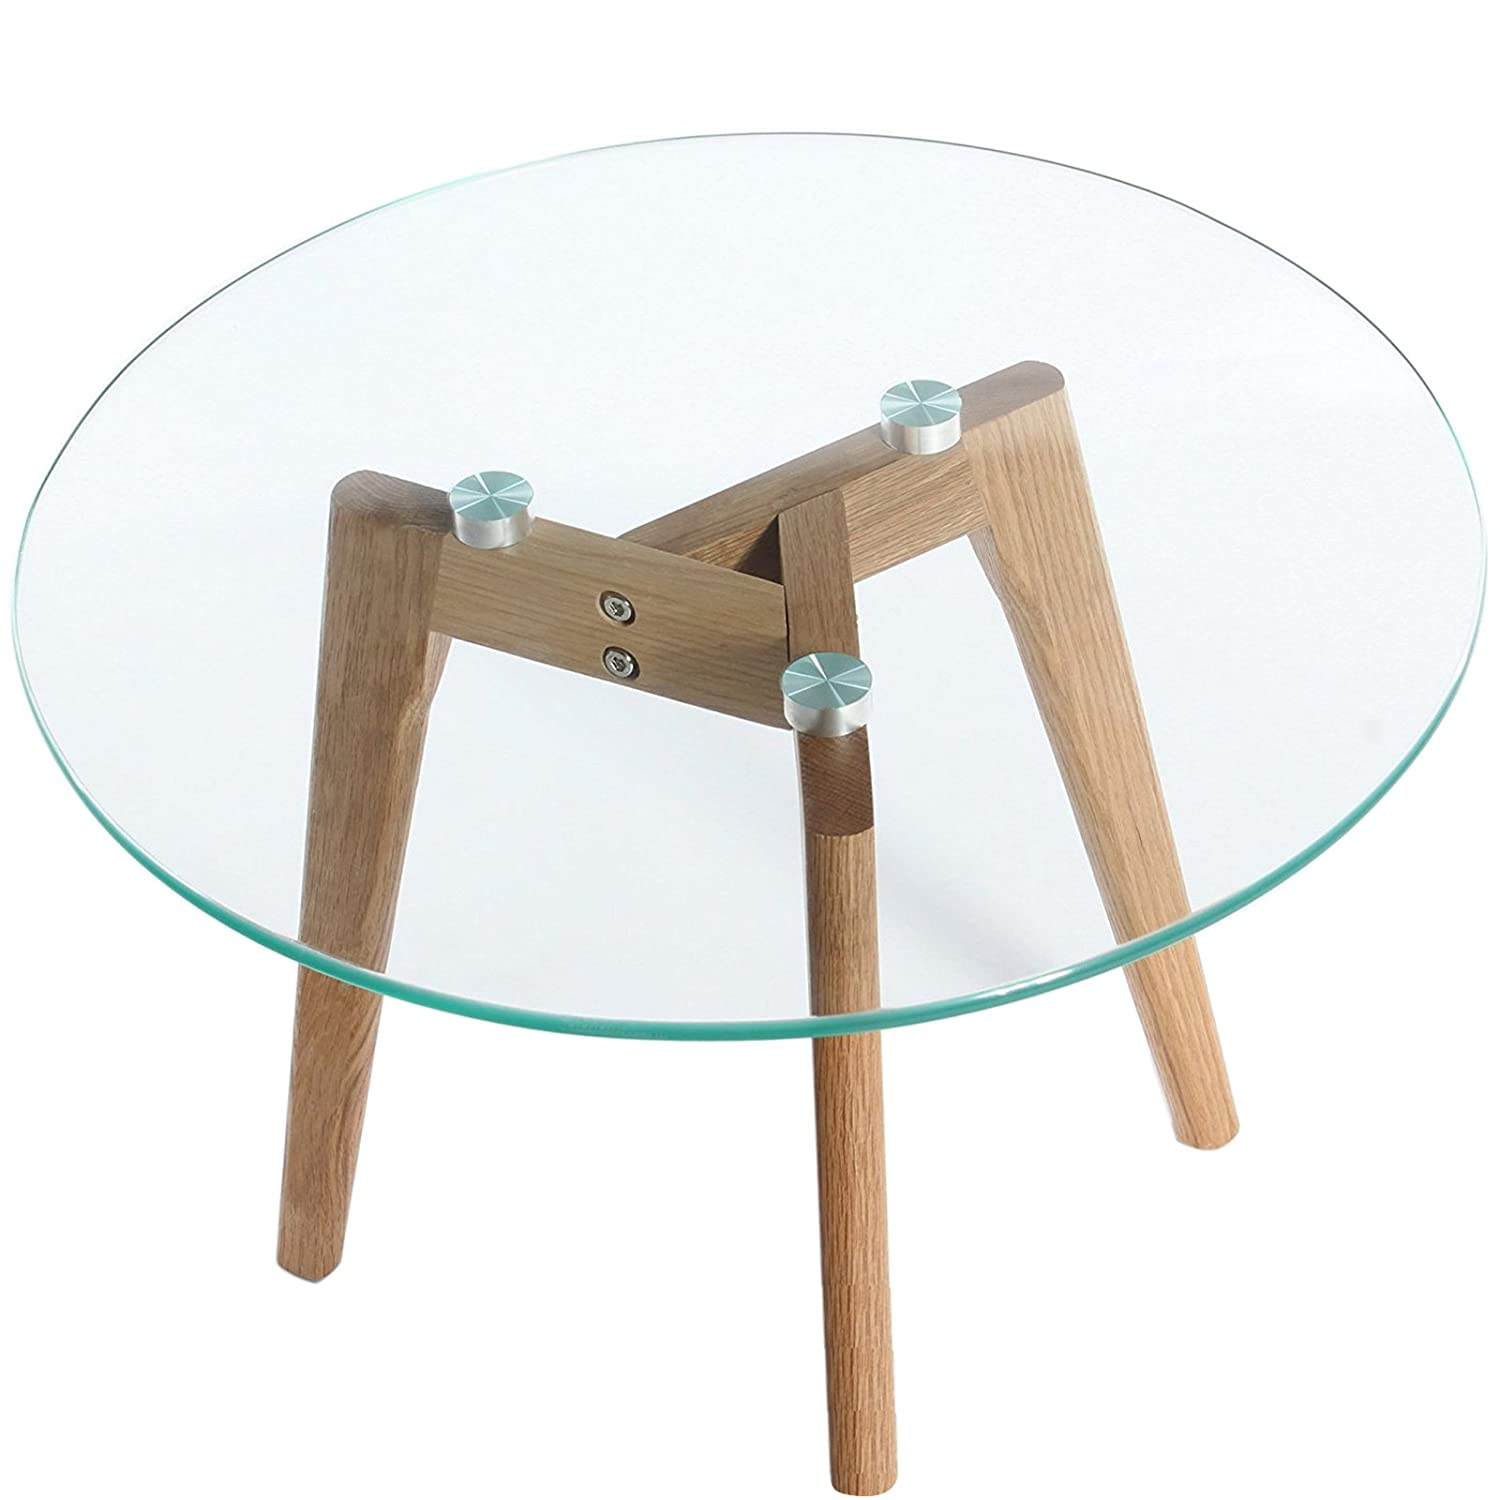 Charles Jacobs Round Coffee/Side Table with Solid Wood Oak Legs and Glass Top - 60cm Diameter